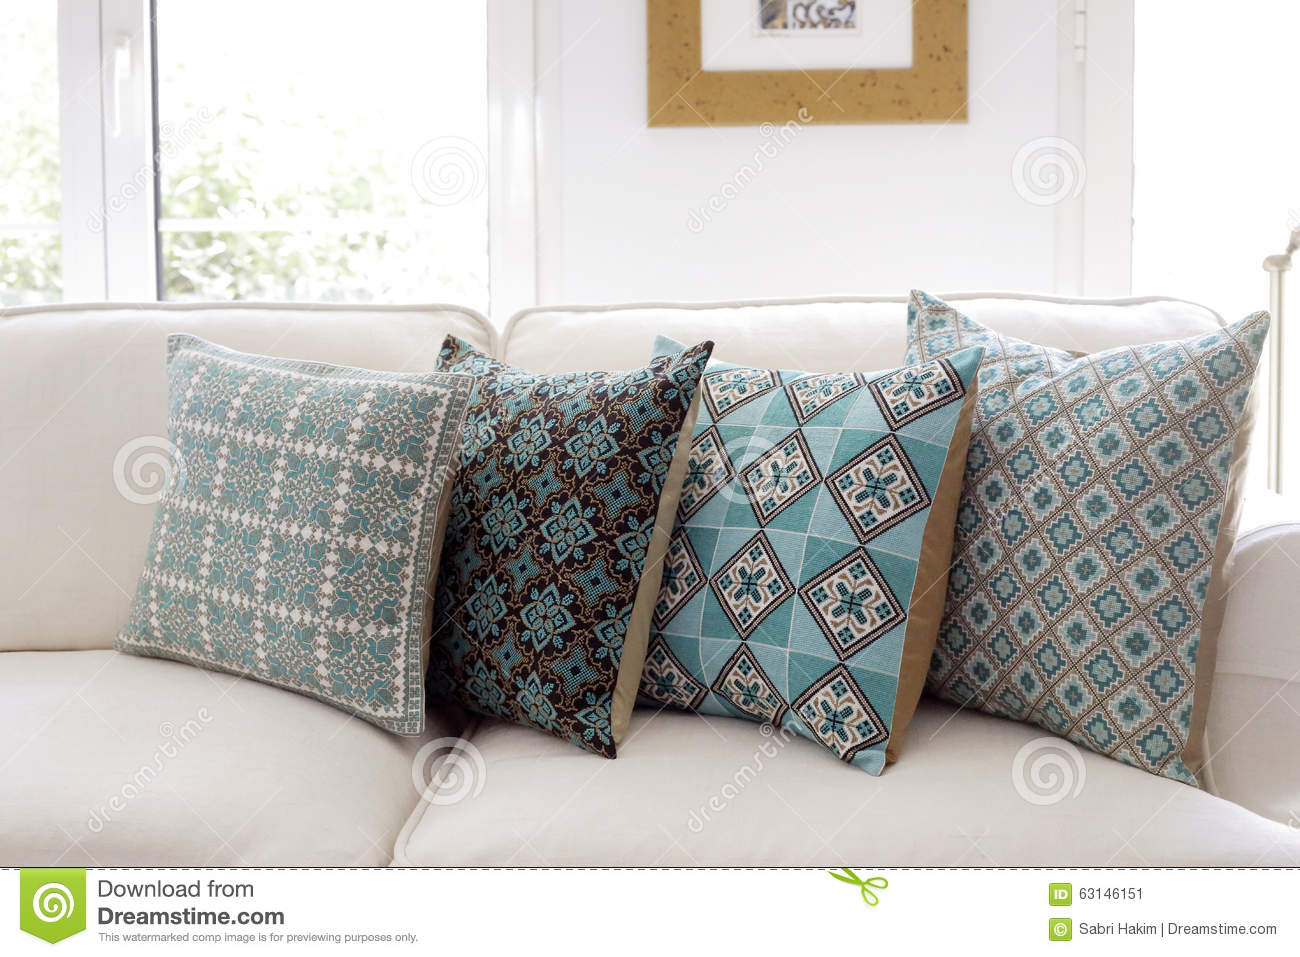 Pillows For Sofa Cactus Throw Pillows For Couch Pastoral Style